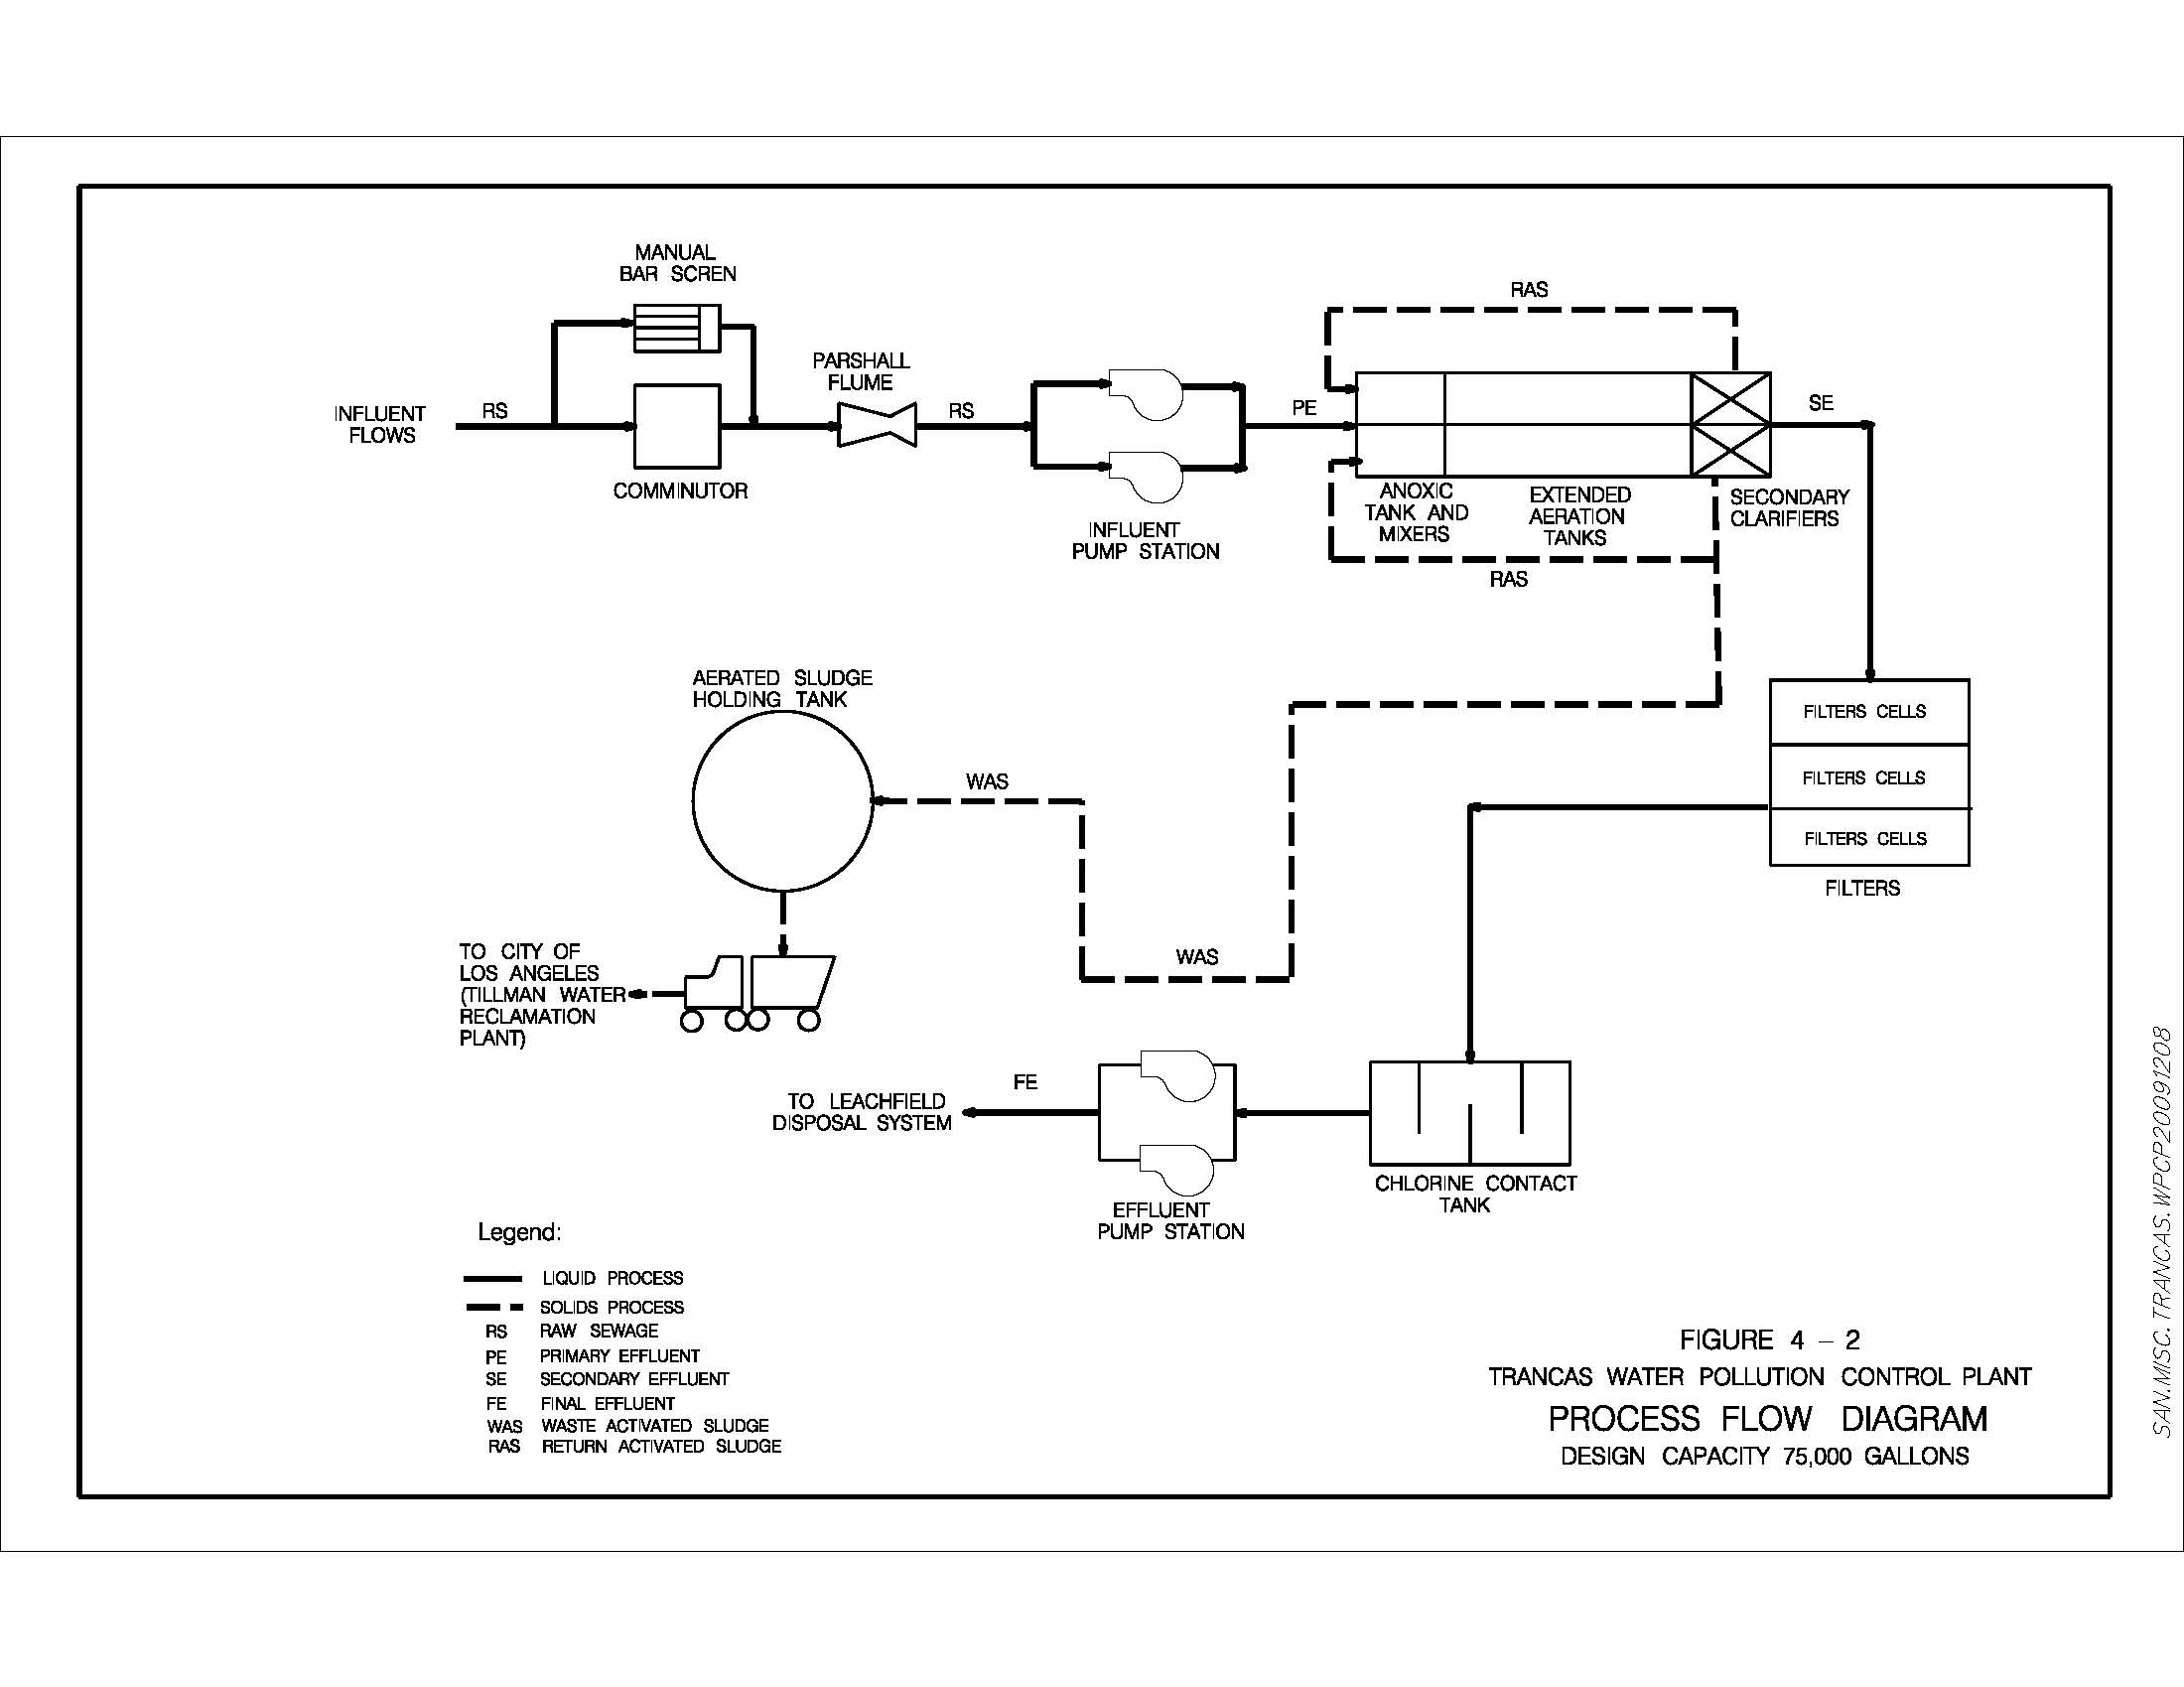 wastewater treatment plant flow diagram baldor capacitor wiring trancas water pollution control figure 3 1 is a of the process following brief discussion and description processes